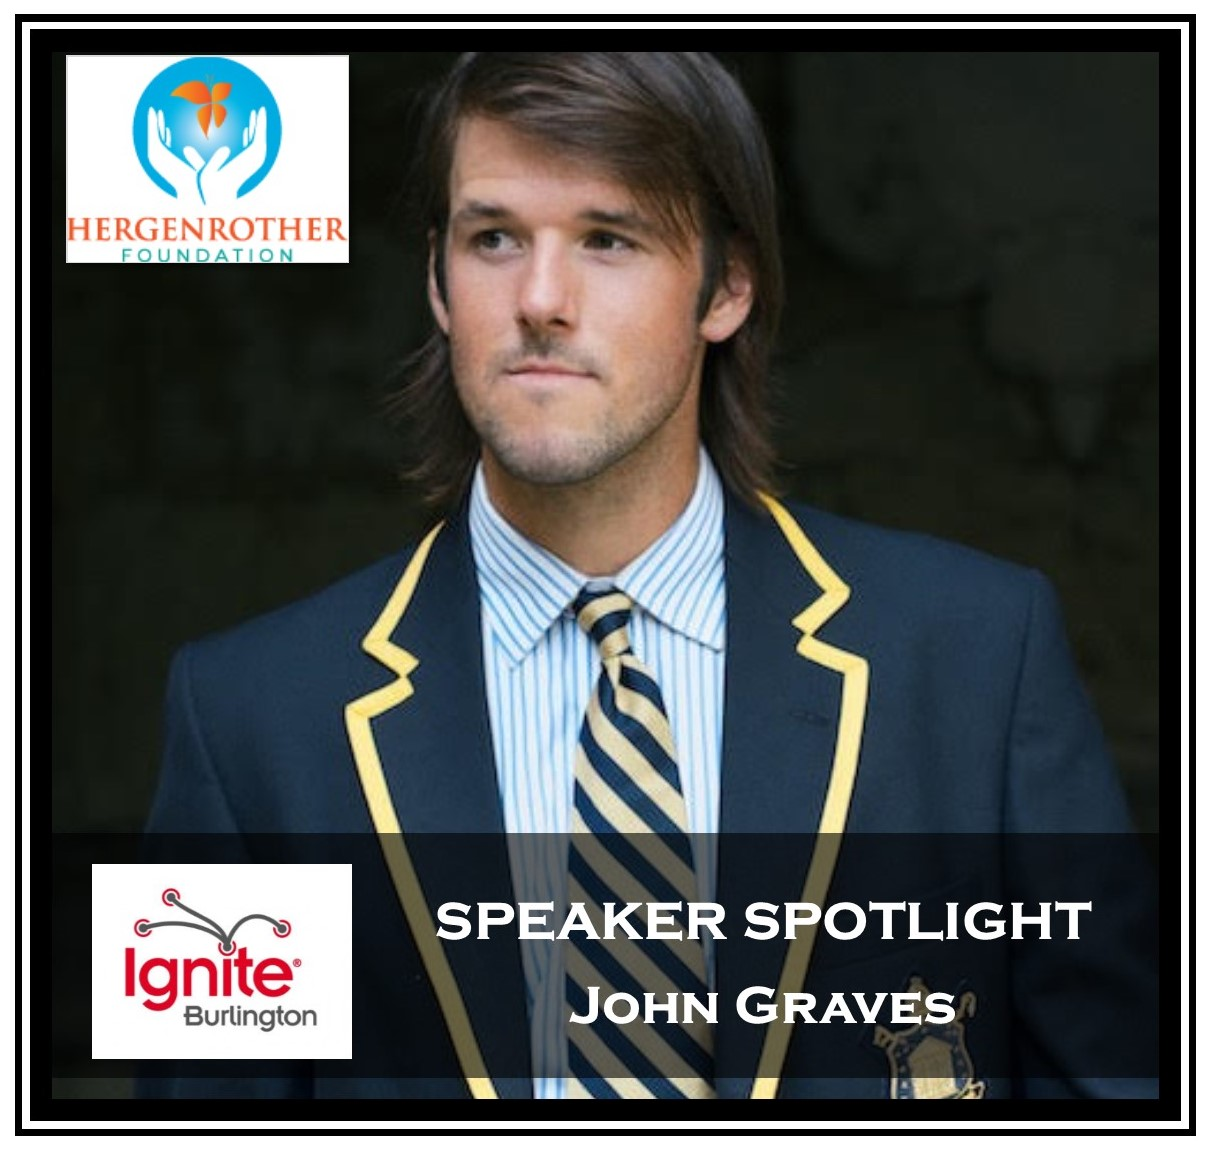 j-graves-speaker-spotlight